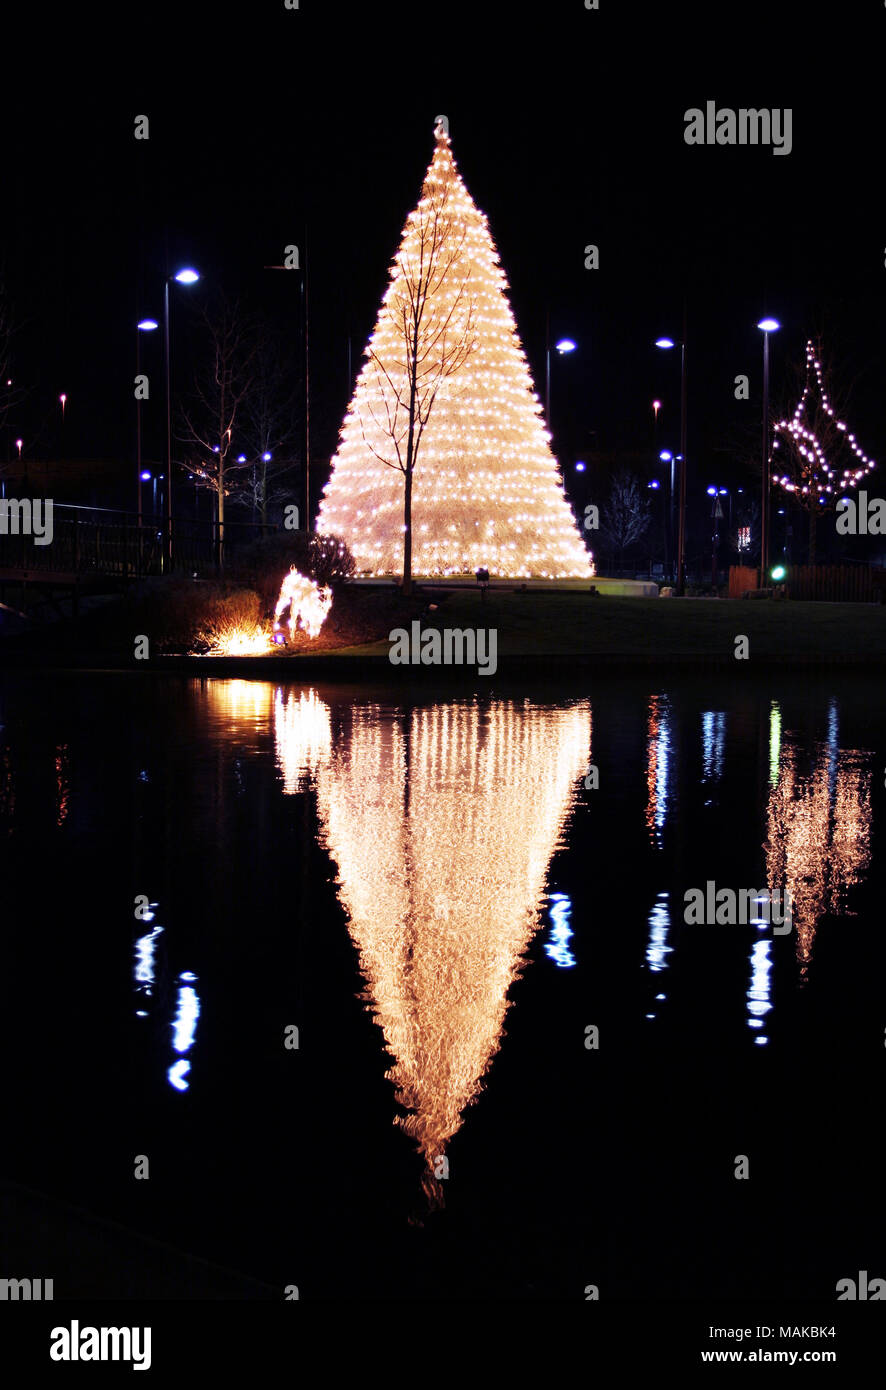 a large christmas tree christmas lights and their reflection in a lake